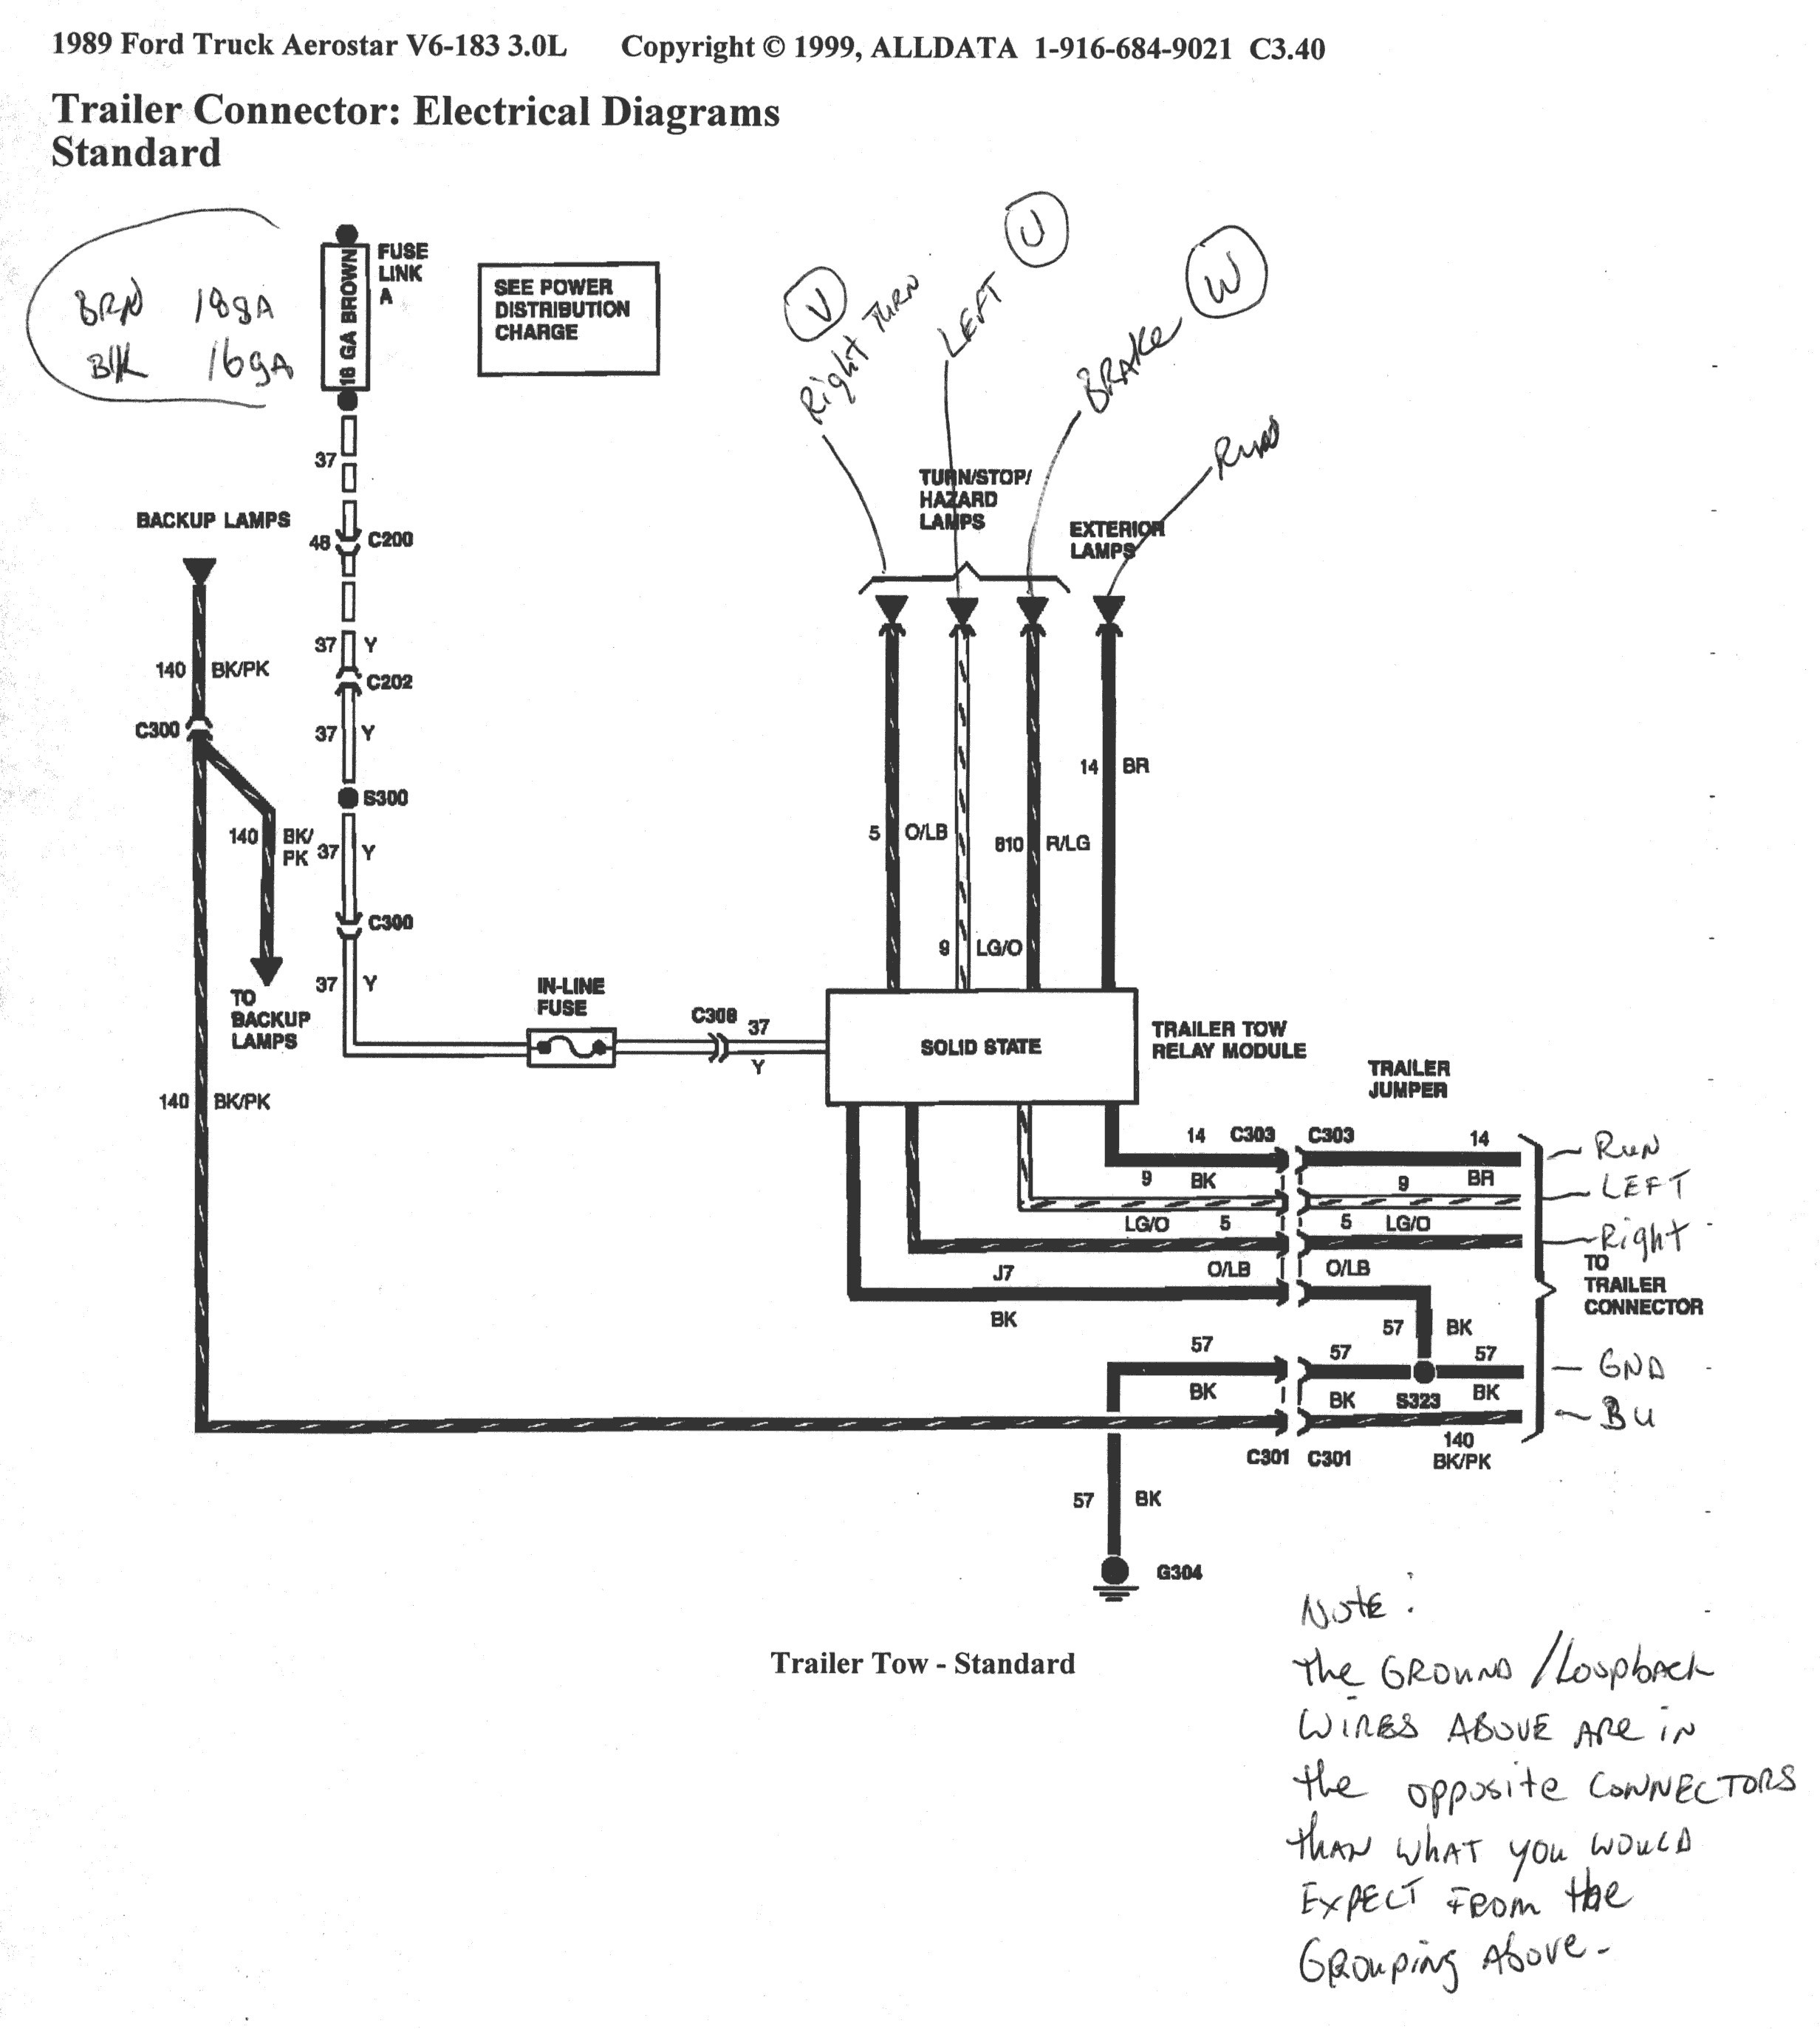 18 free schematic and wiring diagram for f250 trailer defrost timer wiring diagram for f250 ford f250 trailer wiring harness diagram | free wiring diagram